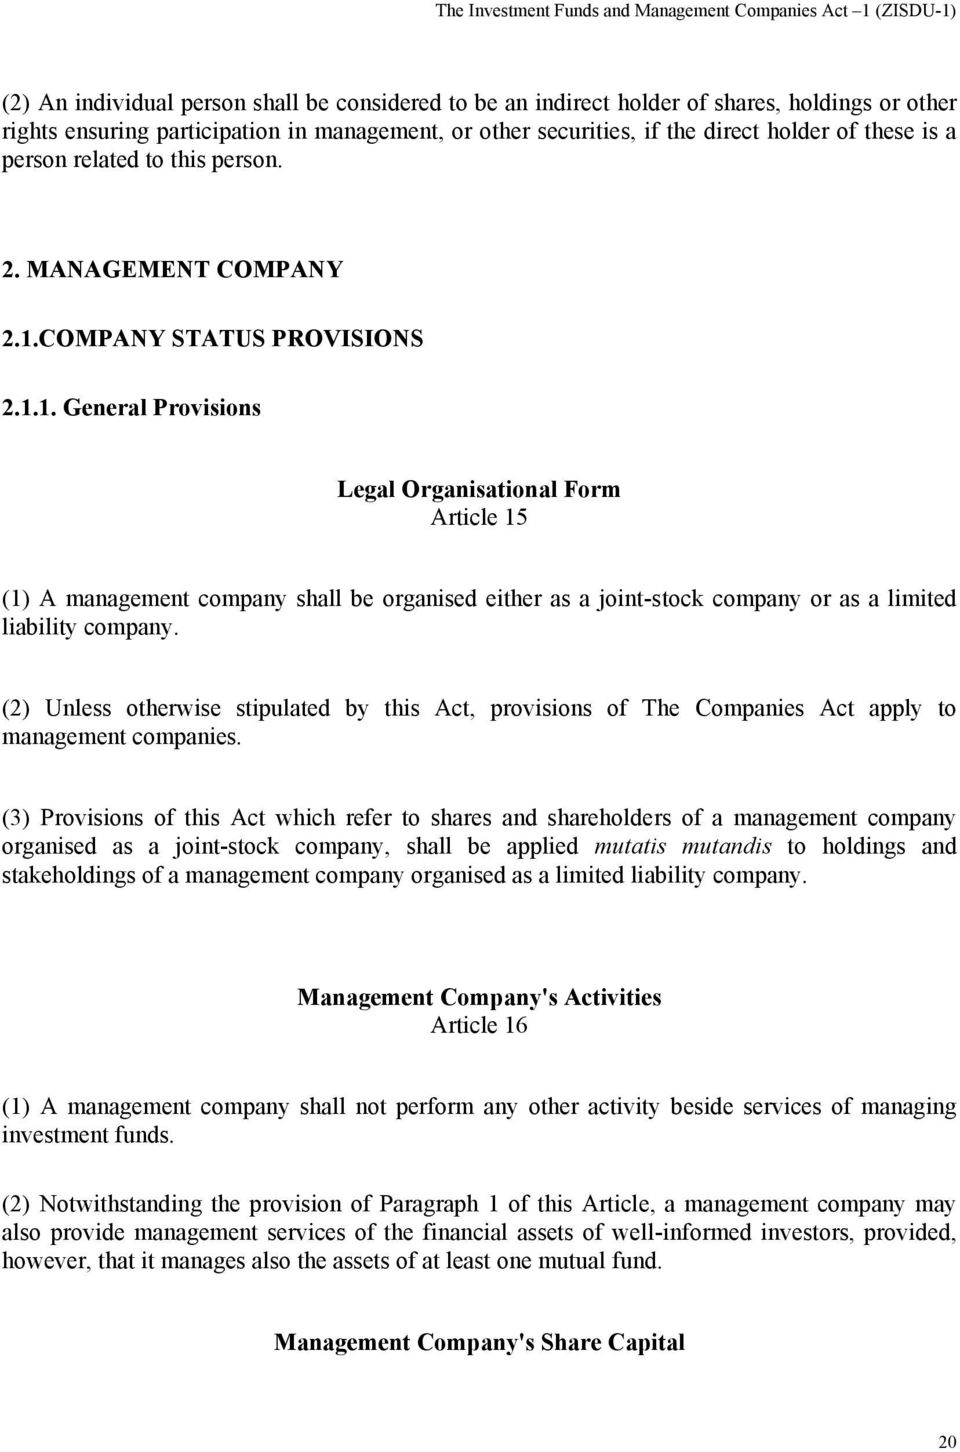 COMPANY STATUS PROVISIONS 2.1.1. General Provisions Legal Organisational Form Article 15 (1) A management company shall be organised either as a joint-stock company or as a limited liability company.